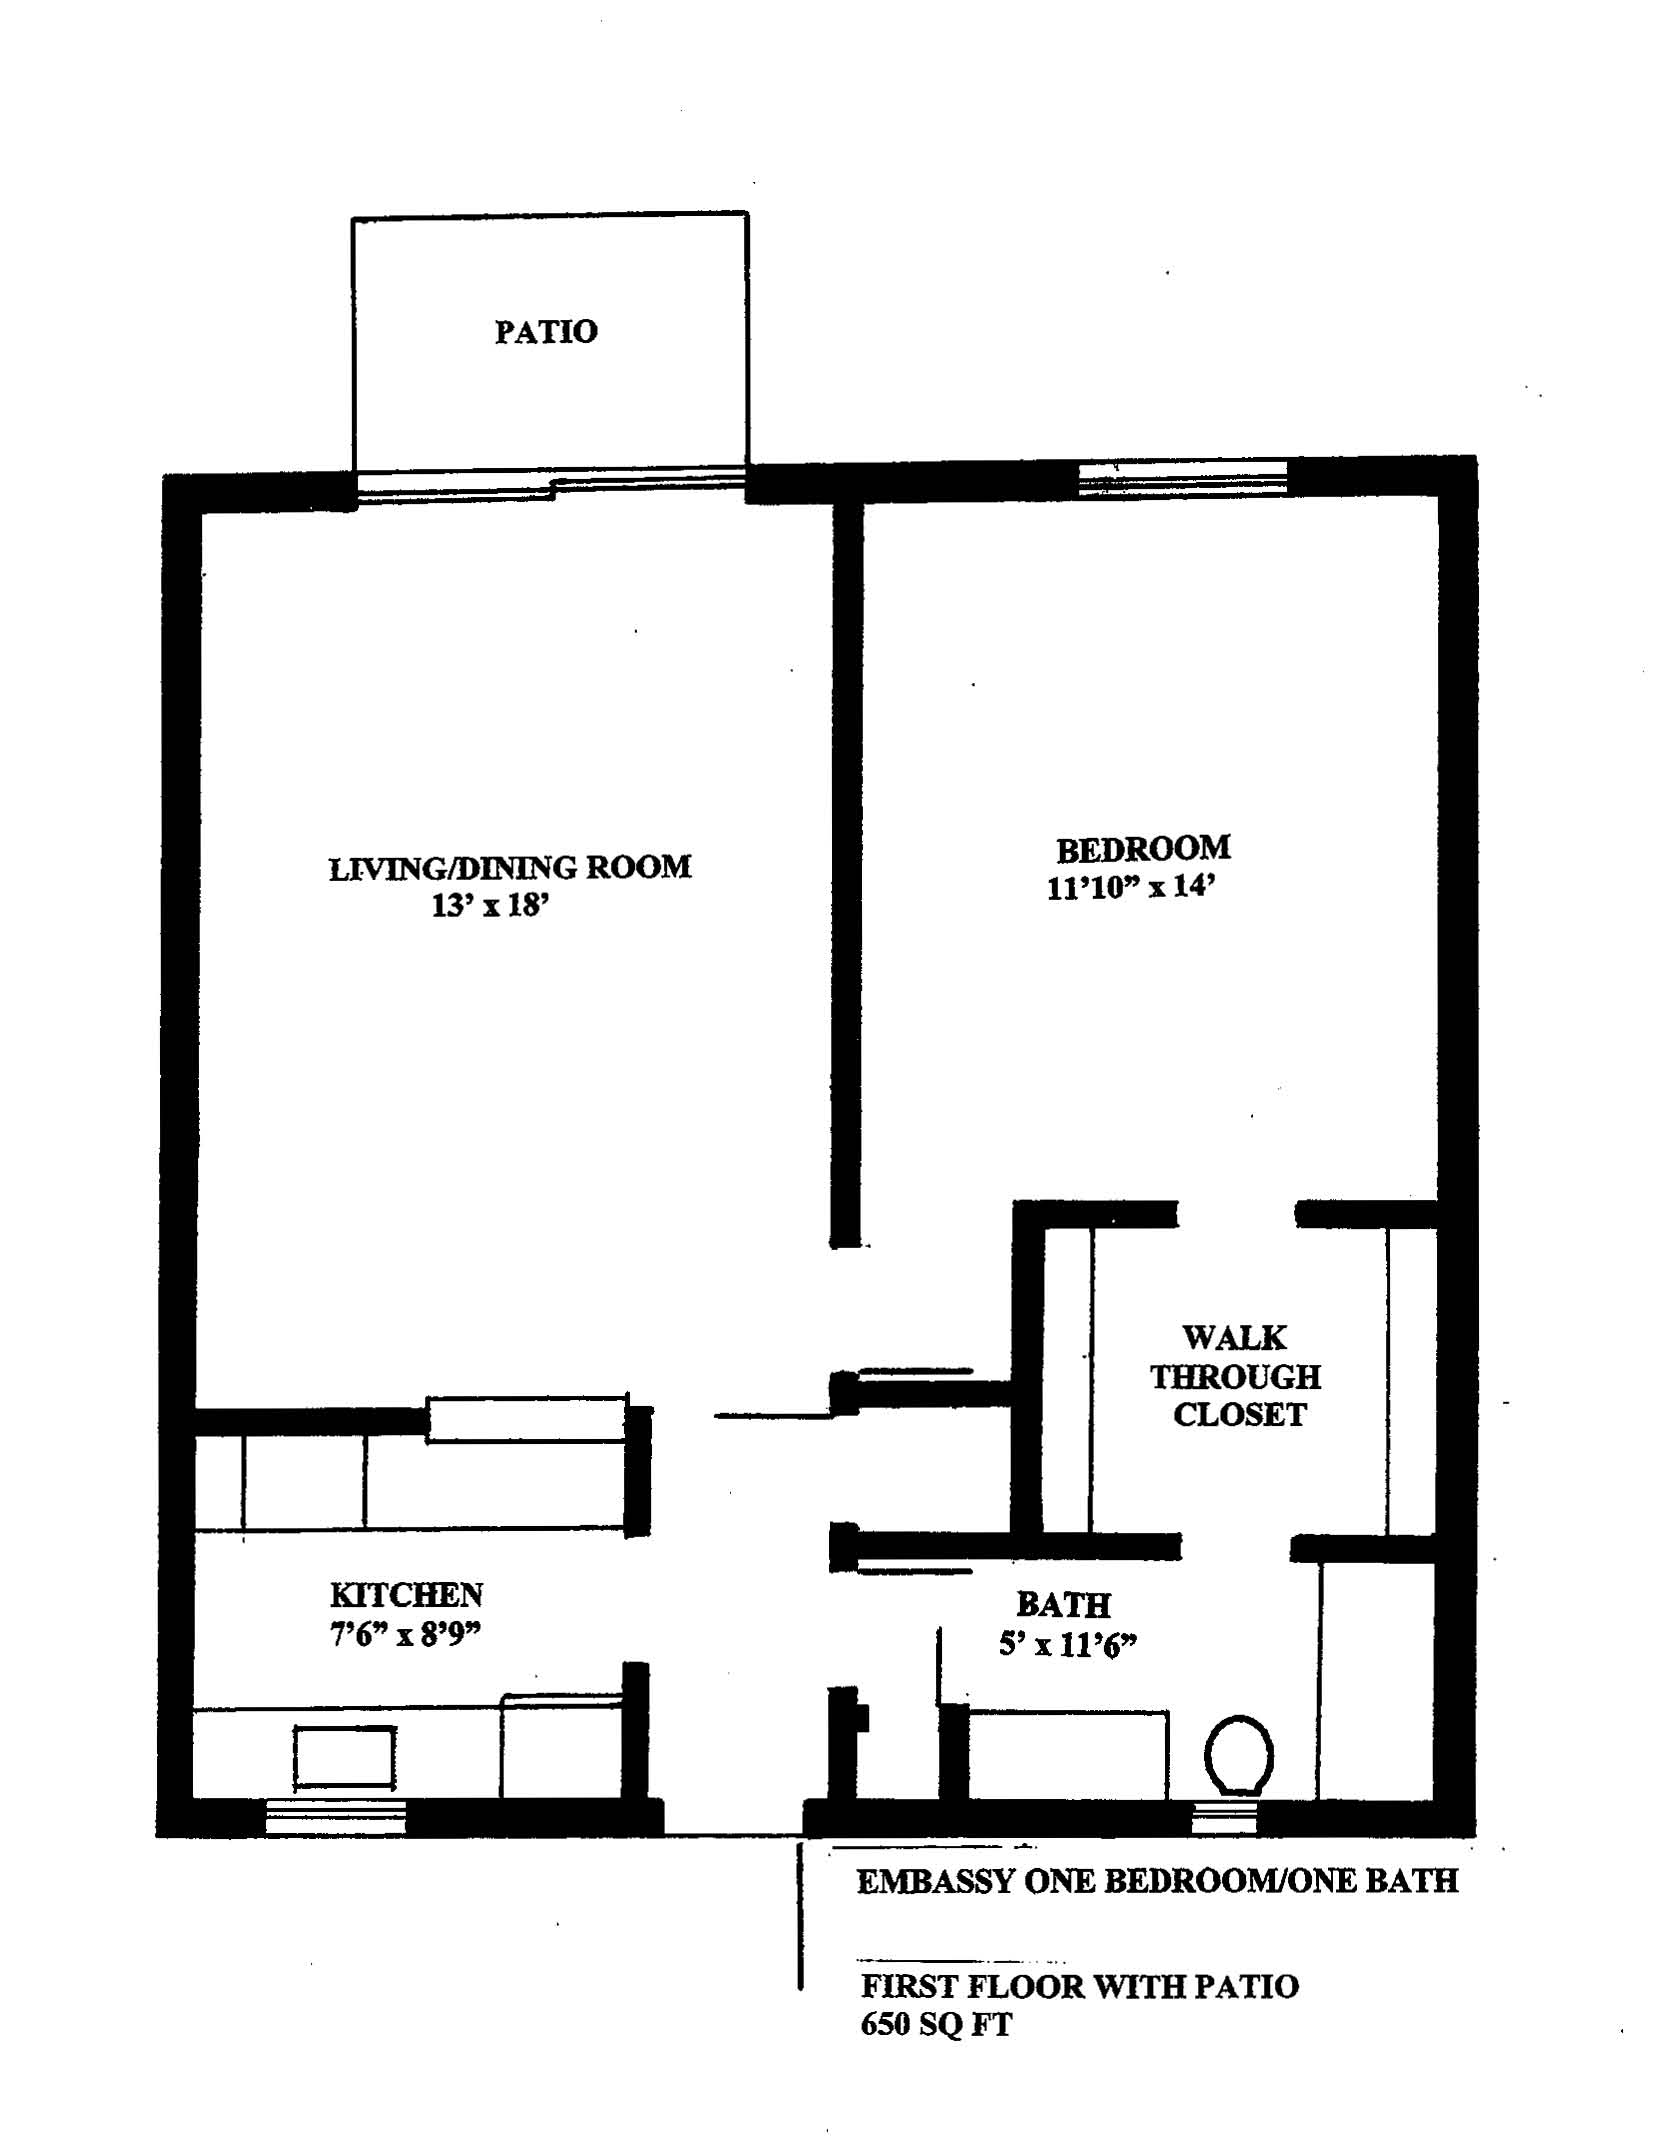 Floorplan - EMBASSY 1 Bedroom- Available NOW Located at Embassy Apartments image